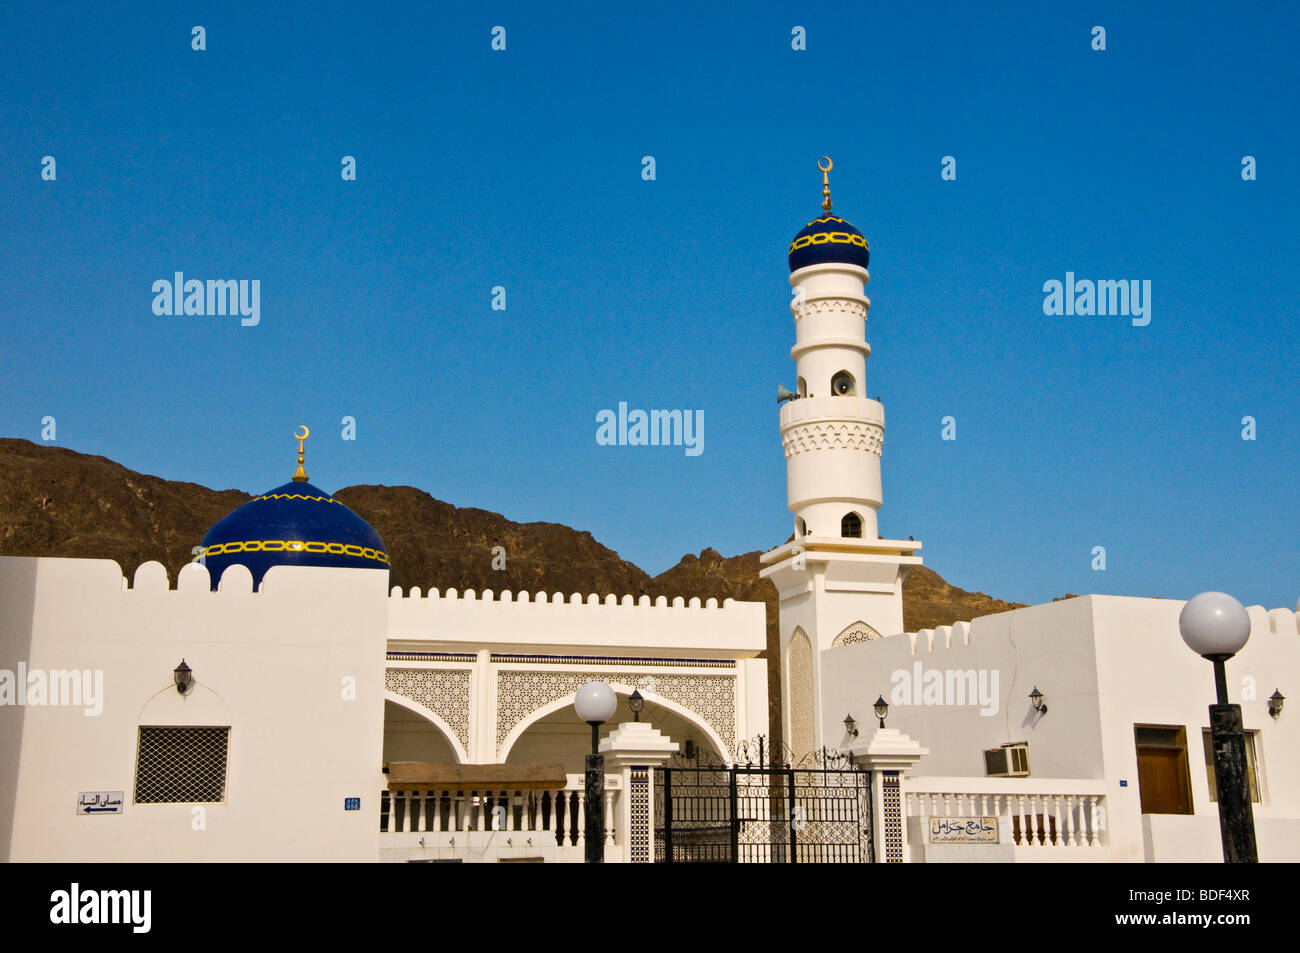 Typical Mosque Muscat Sultanate of Oman - Stock Image